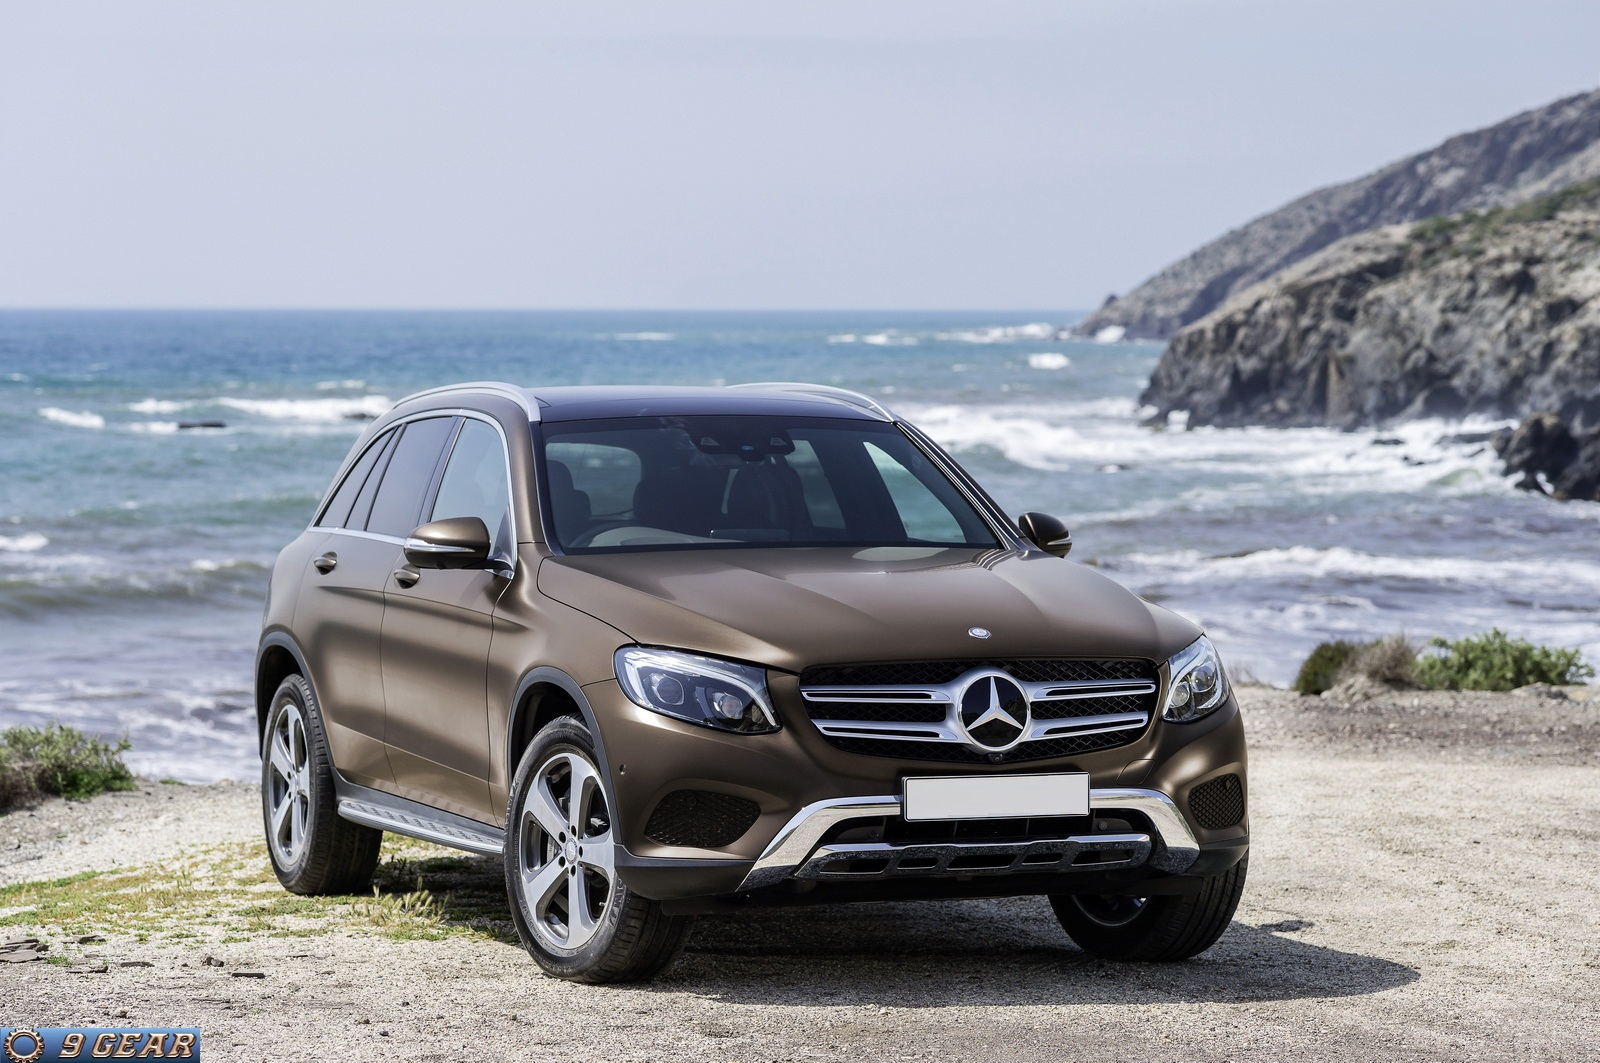 new 2016 mercedes benz glc class car reviews new car pictures for 2018 2019. Black Bedroom Furniture Sets. Home Design Ideas